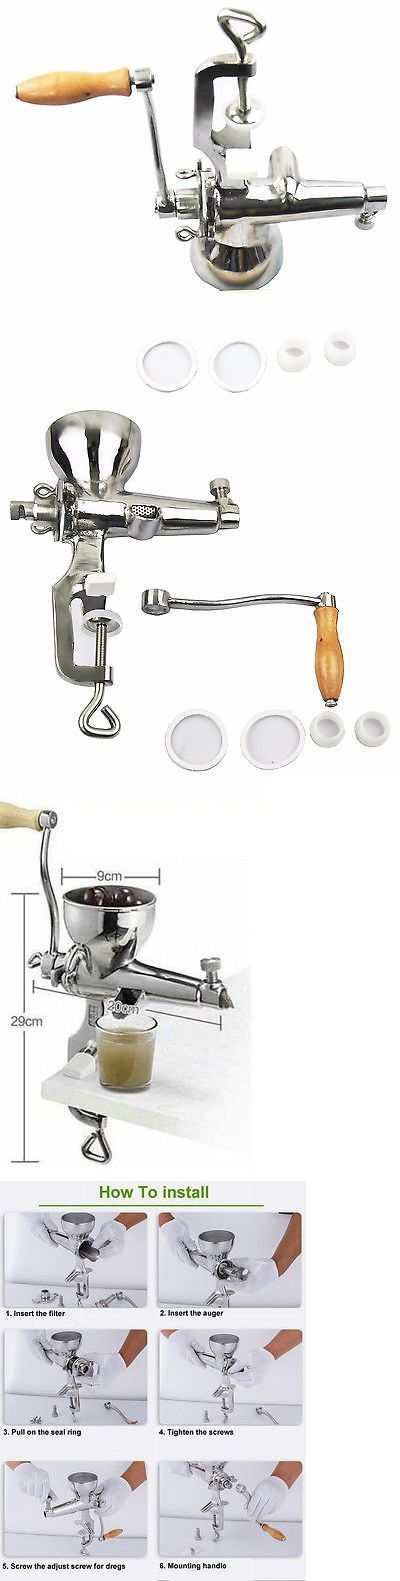 Juicers 20677: Stainless Steel Wheat Grass Hand Juicer Manual Juicer Wheatgrass Extractor -> BUY IT NOW ONLY: $74.05 on eBay!